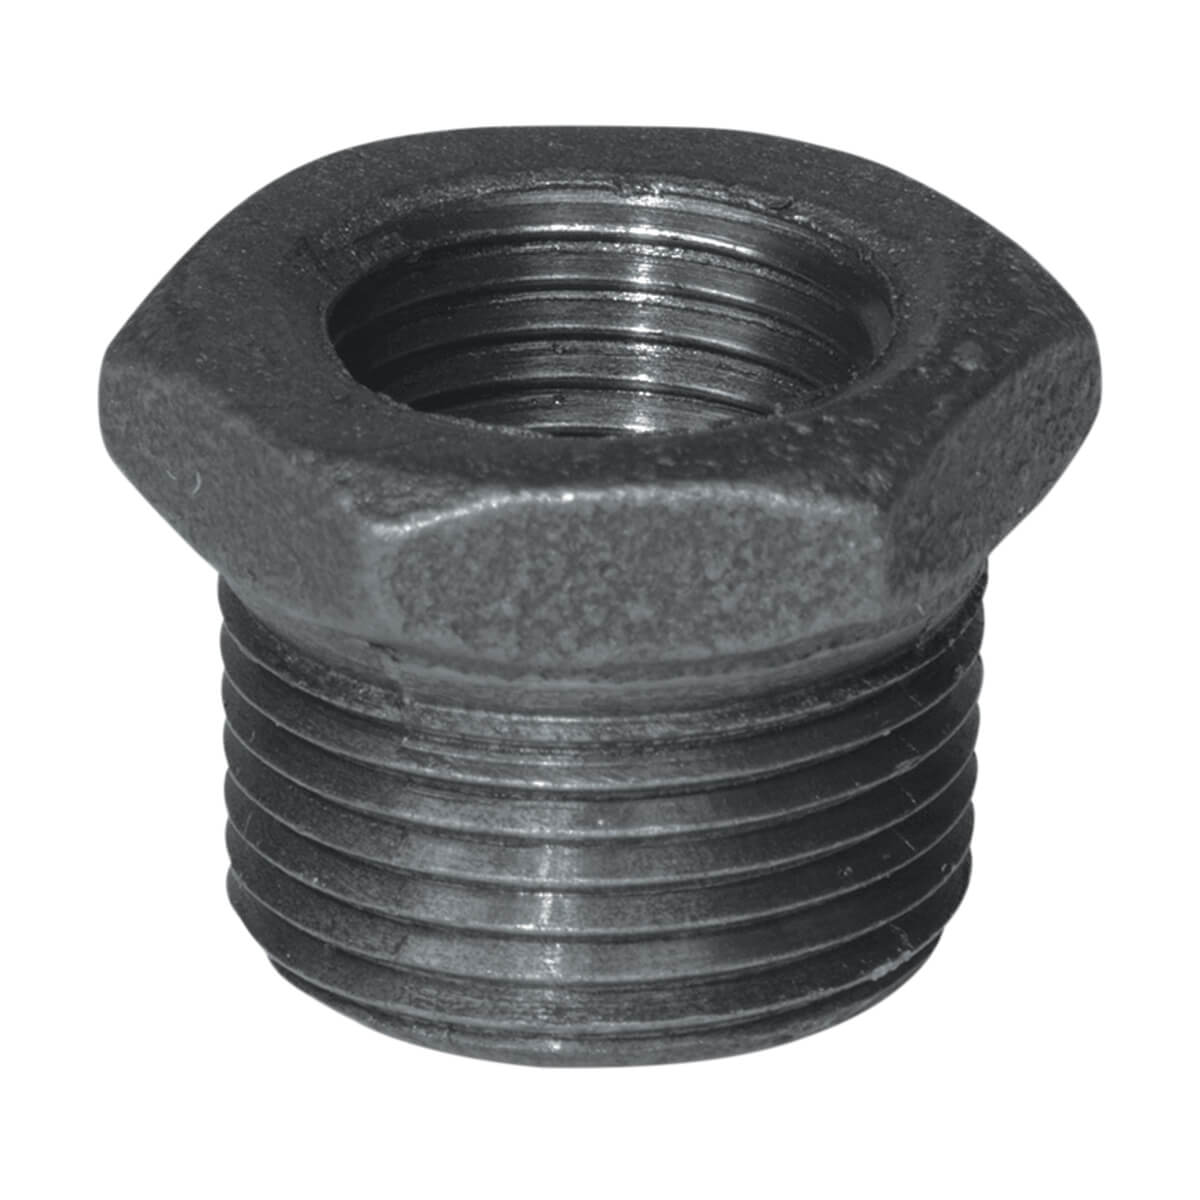 Fitting Black Iron Hex Bushing - 1-in x 1/2-in